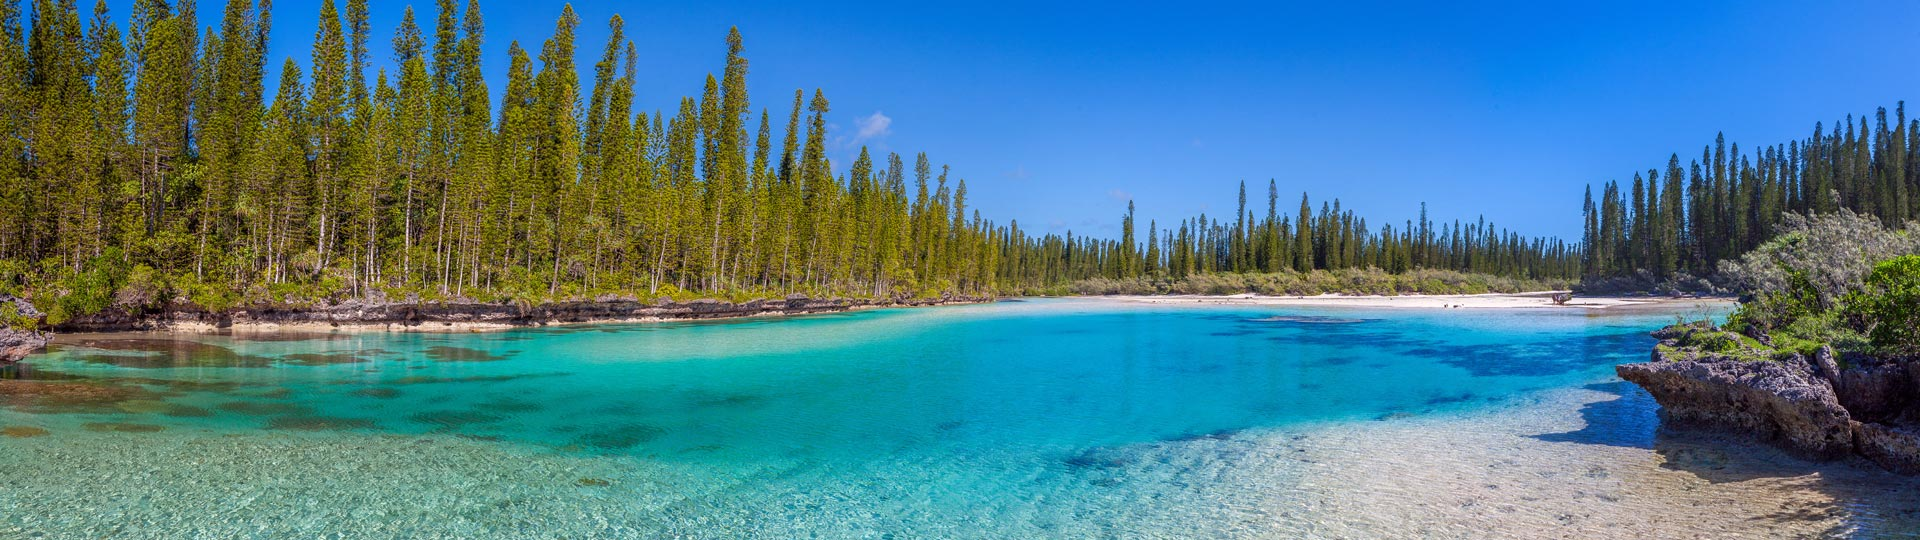 Travel to new caledonia oro bay for Piscine naturelle ile des pins